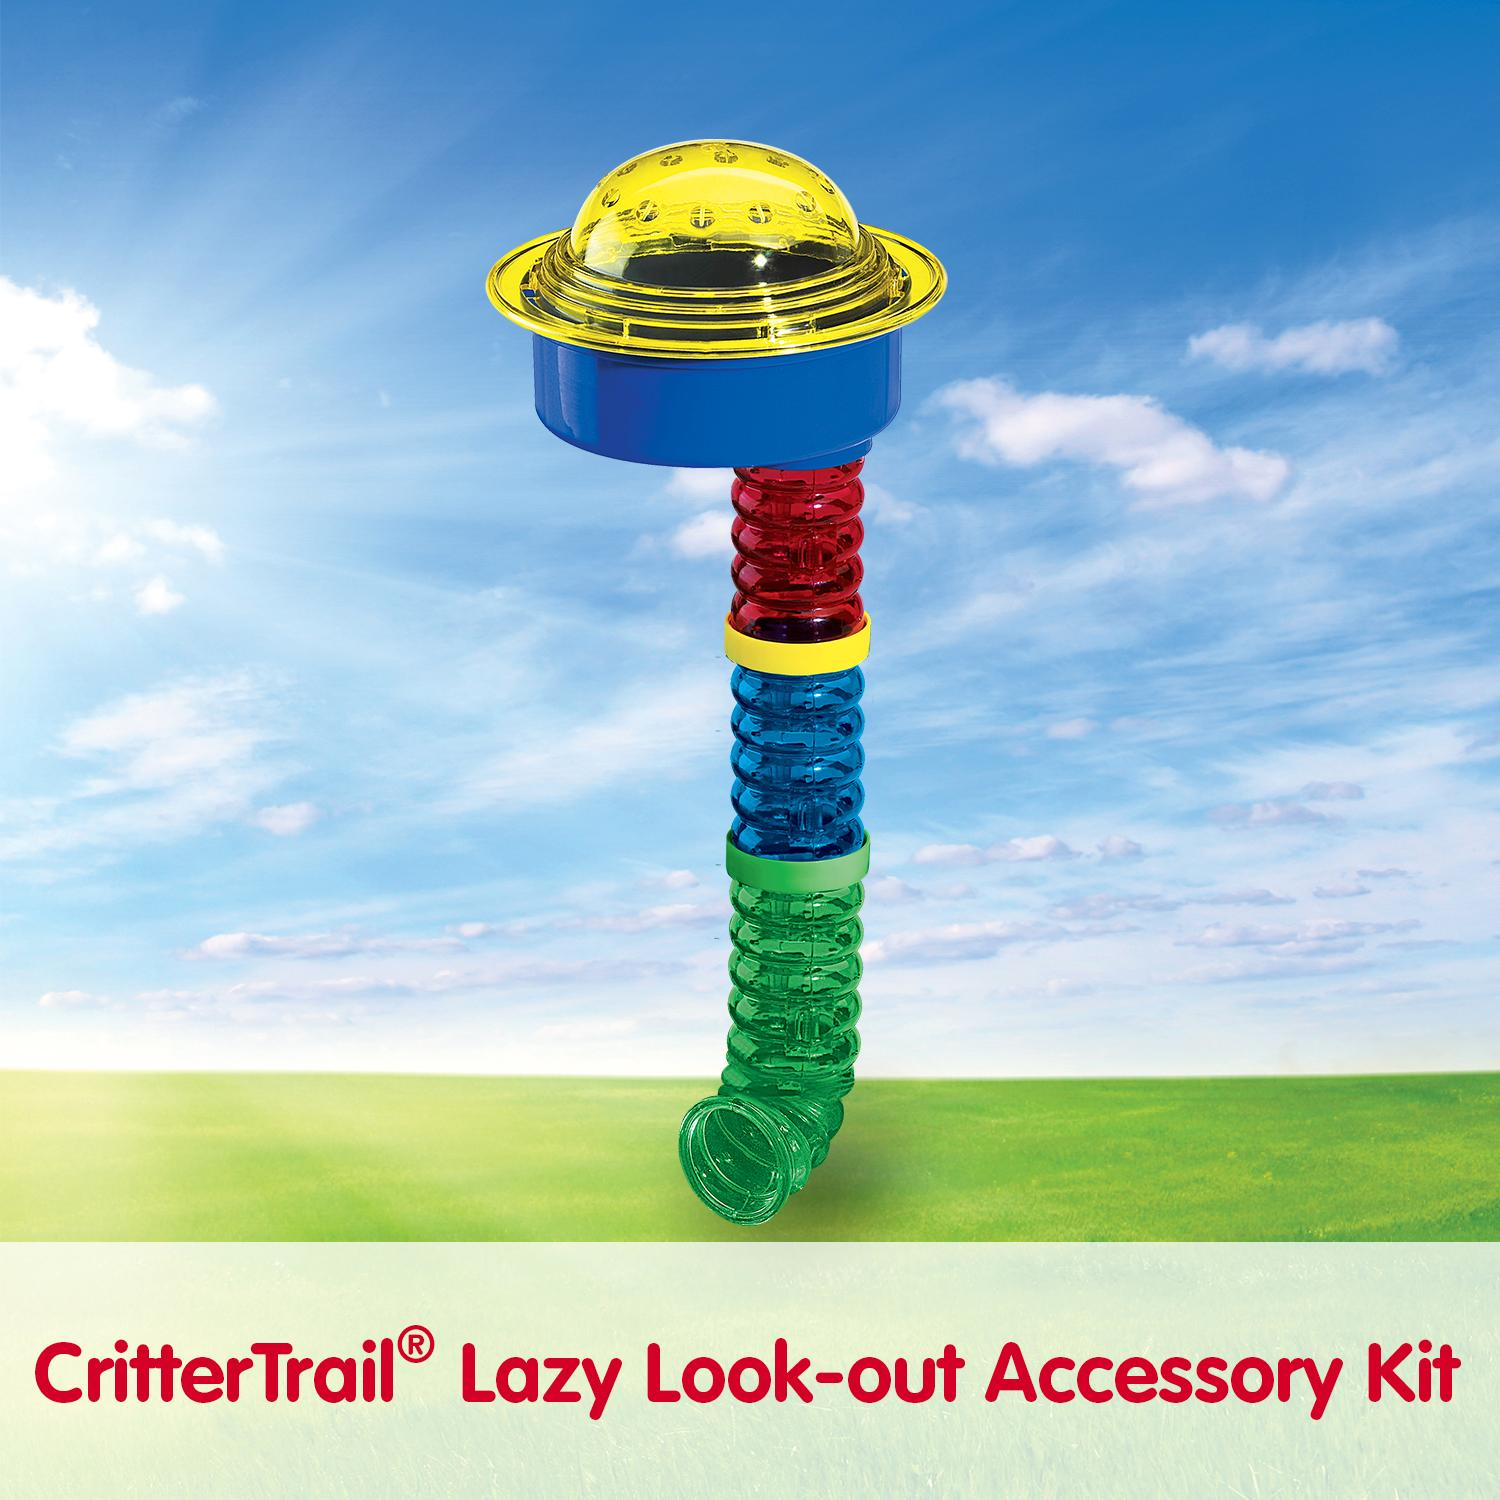 Kaytee Crittertrail Lazy Lookout J-Tube Connector Ring Pet Accessory Kit